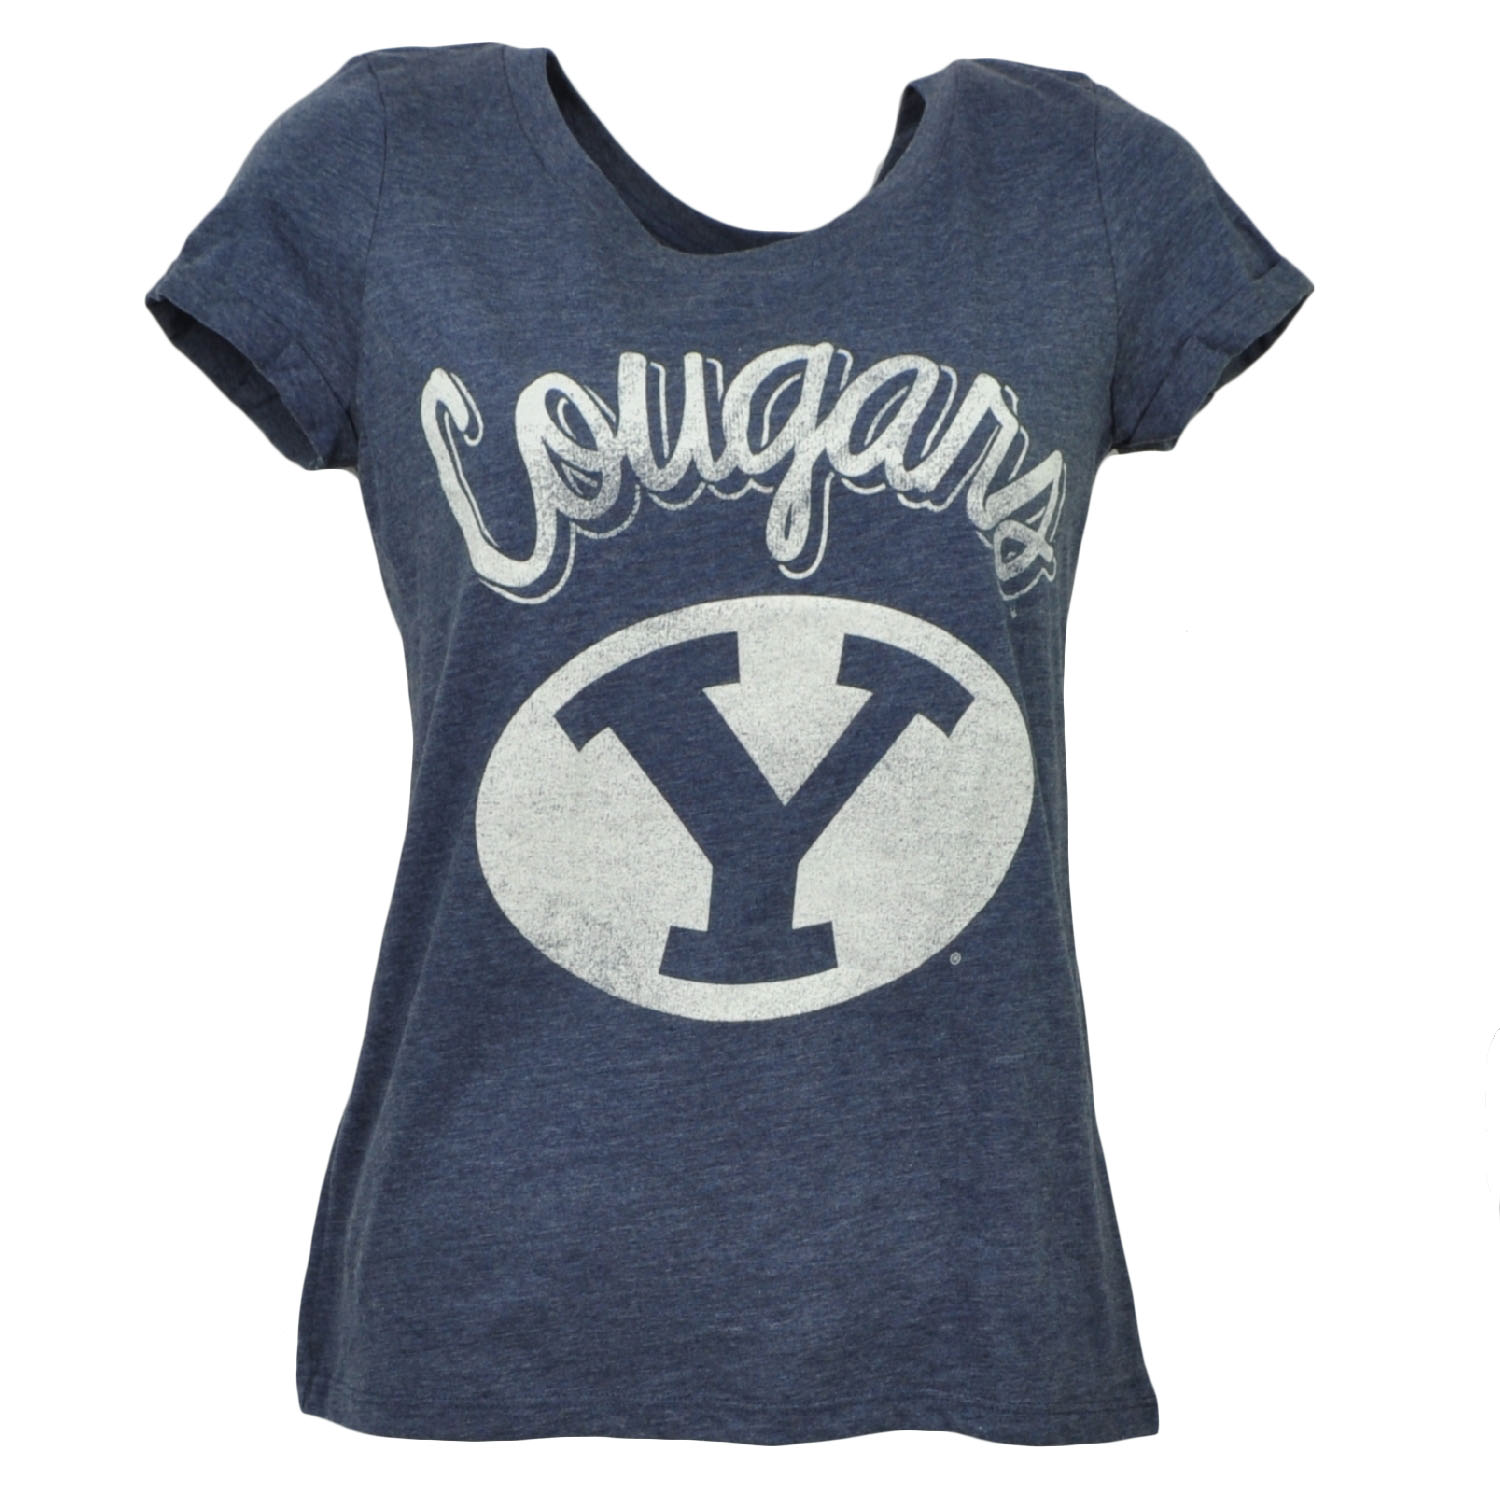 NCAA Brigham Young Cougars Womens Tshirt Tee Blue Crew Neck Short Sleeve Medium